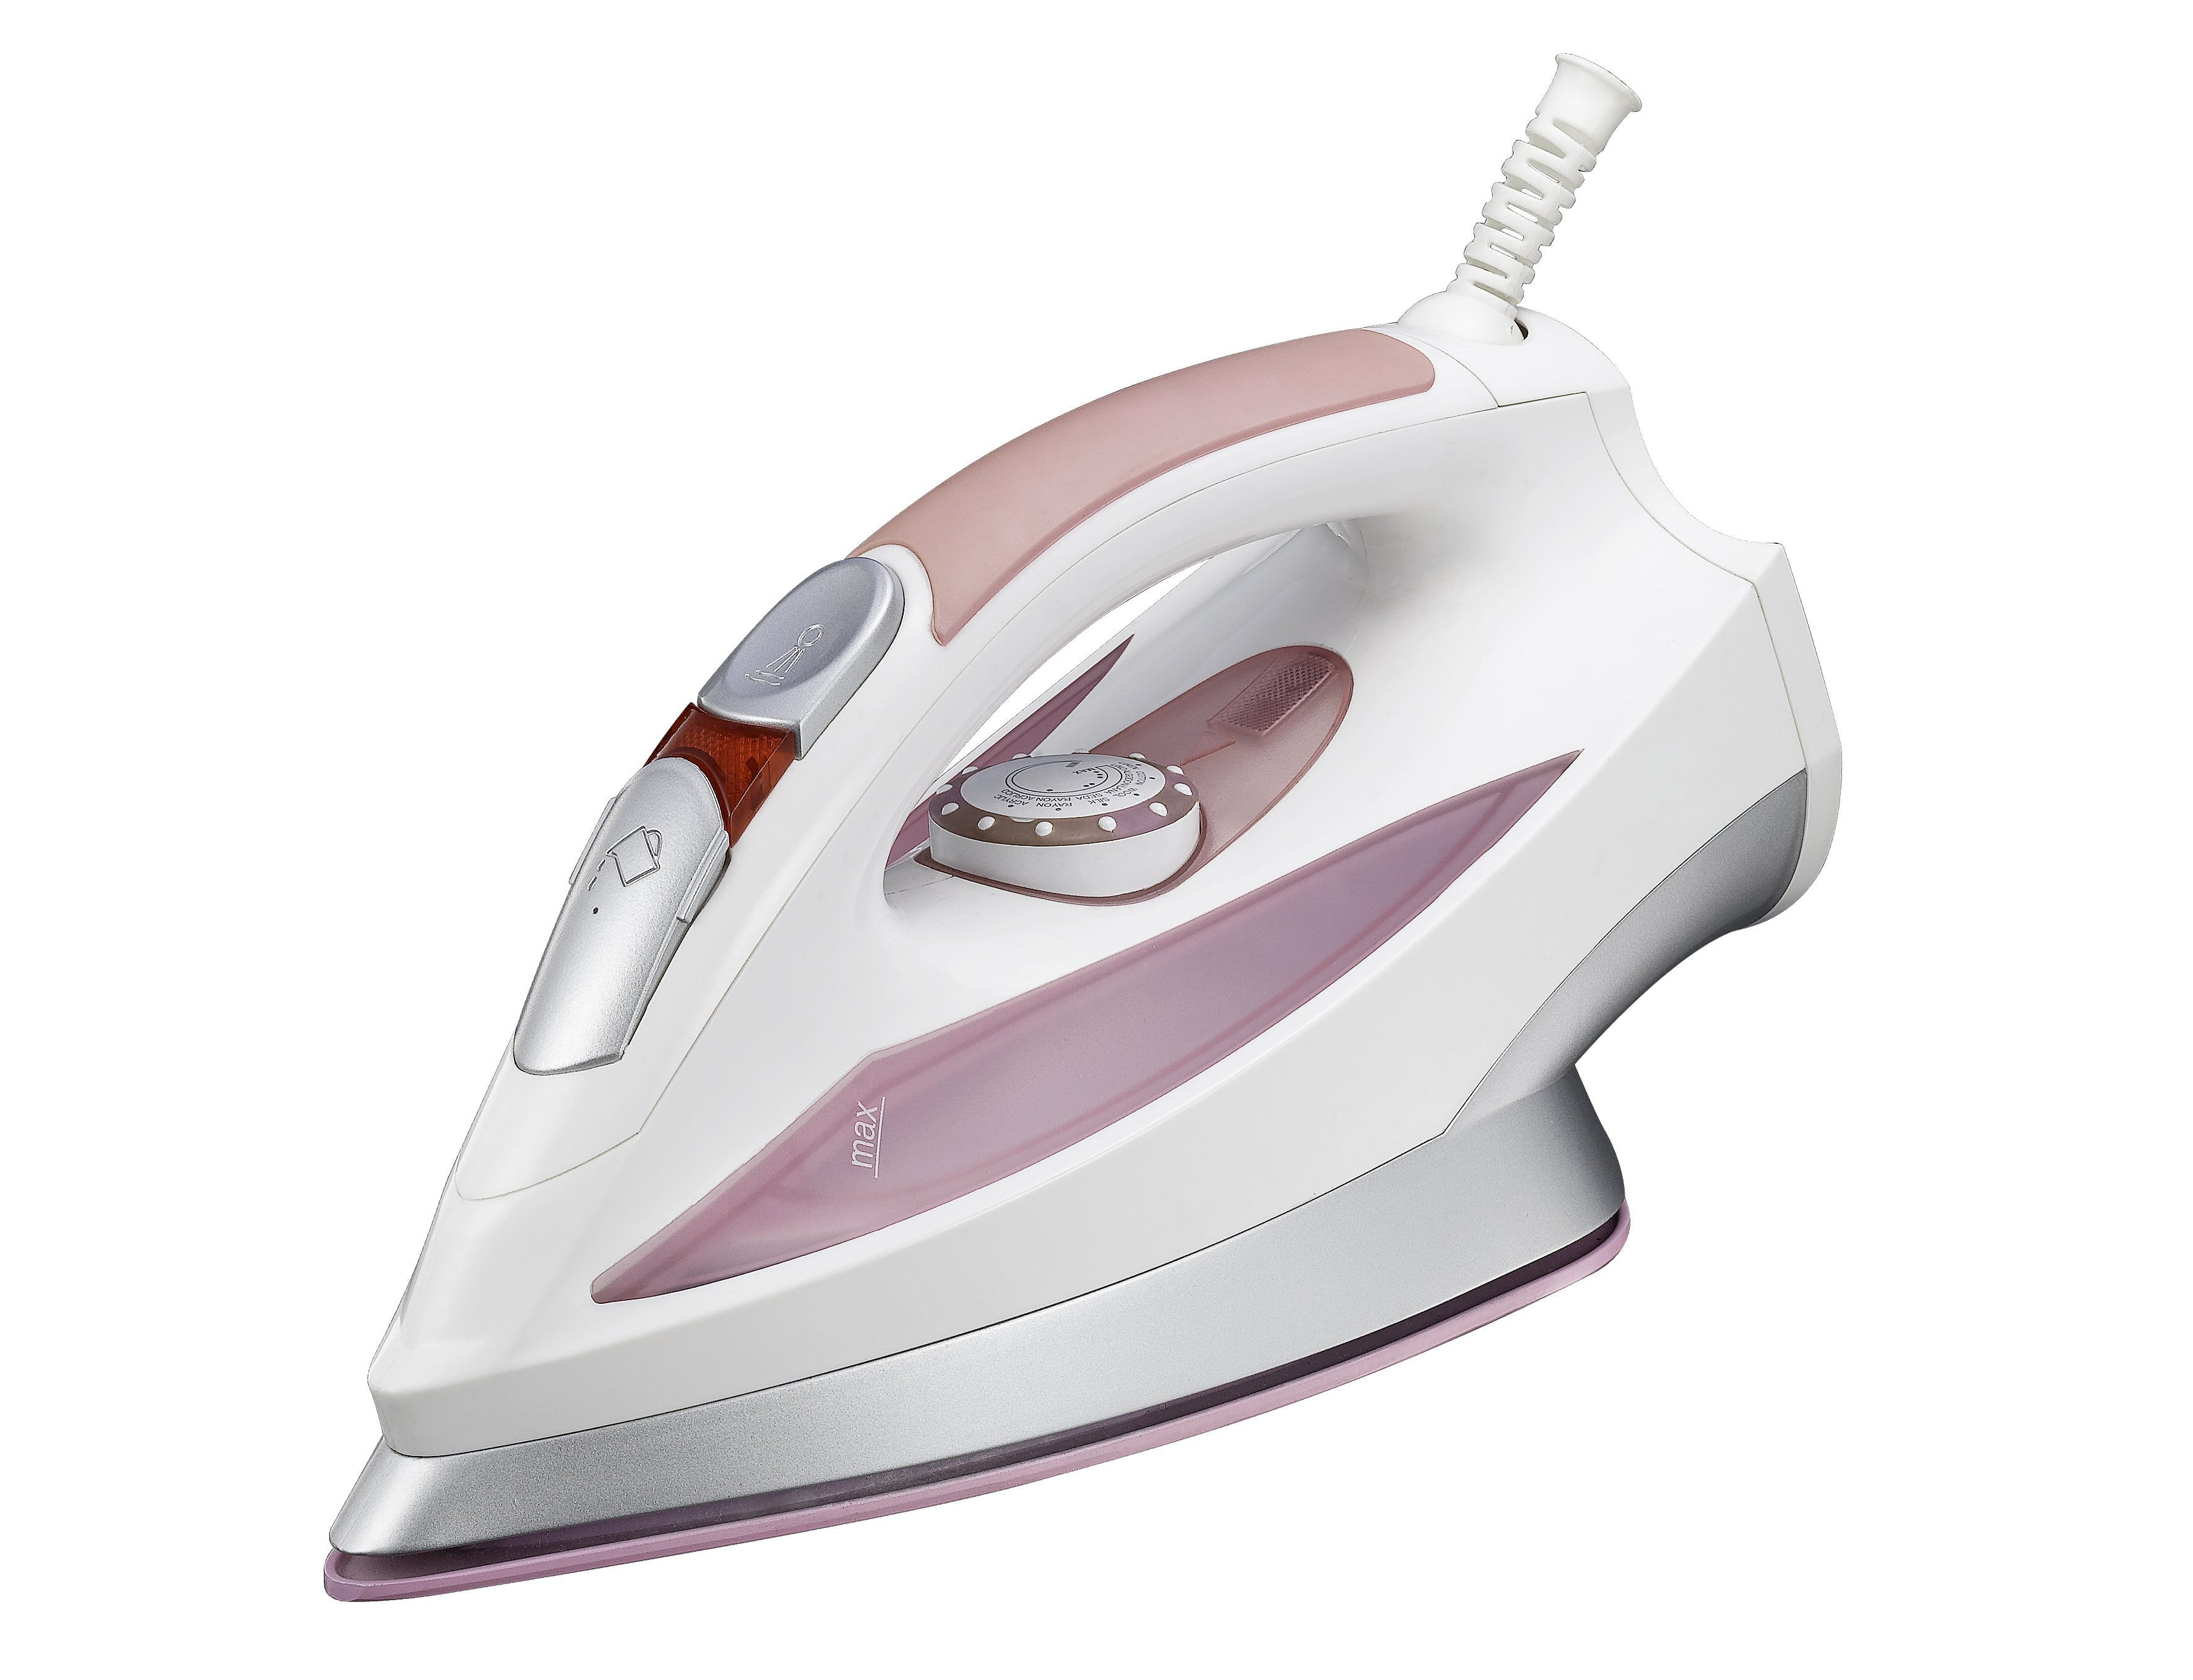 Grey and Pink Cordless Clothes Iron